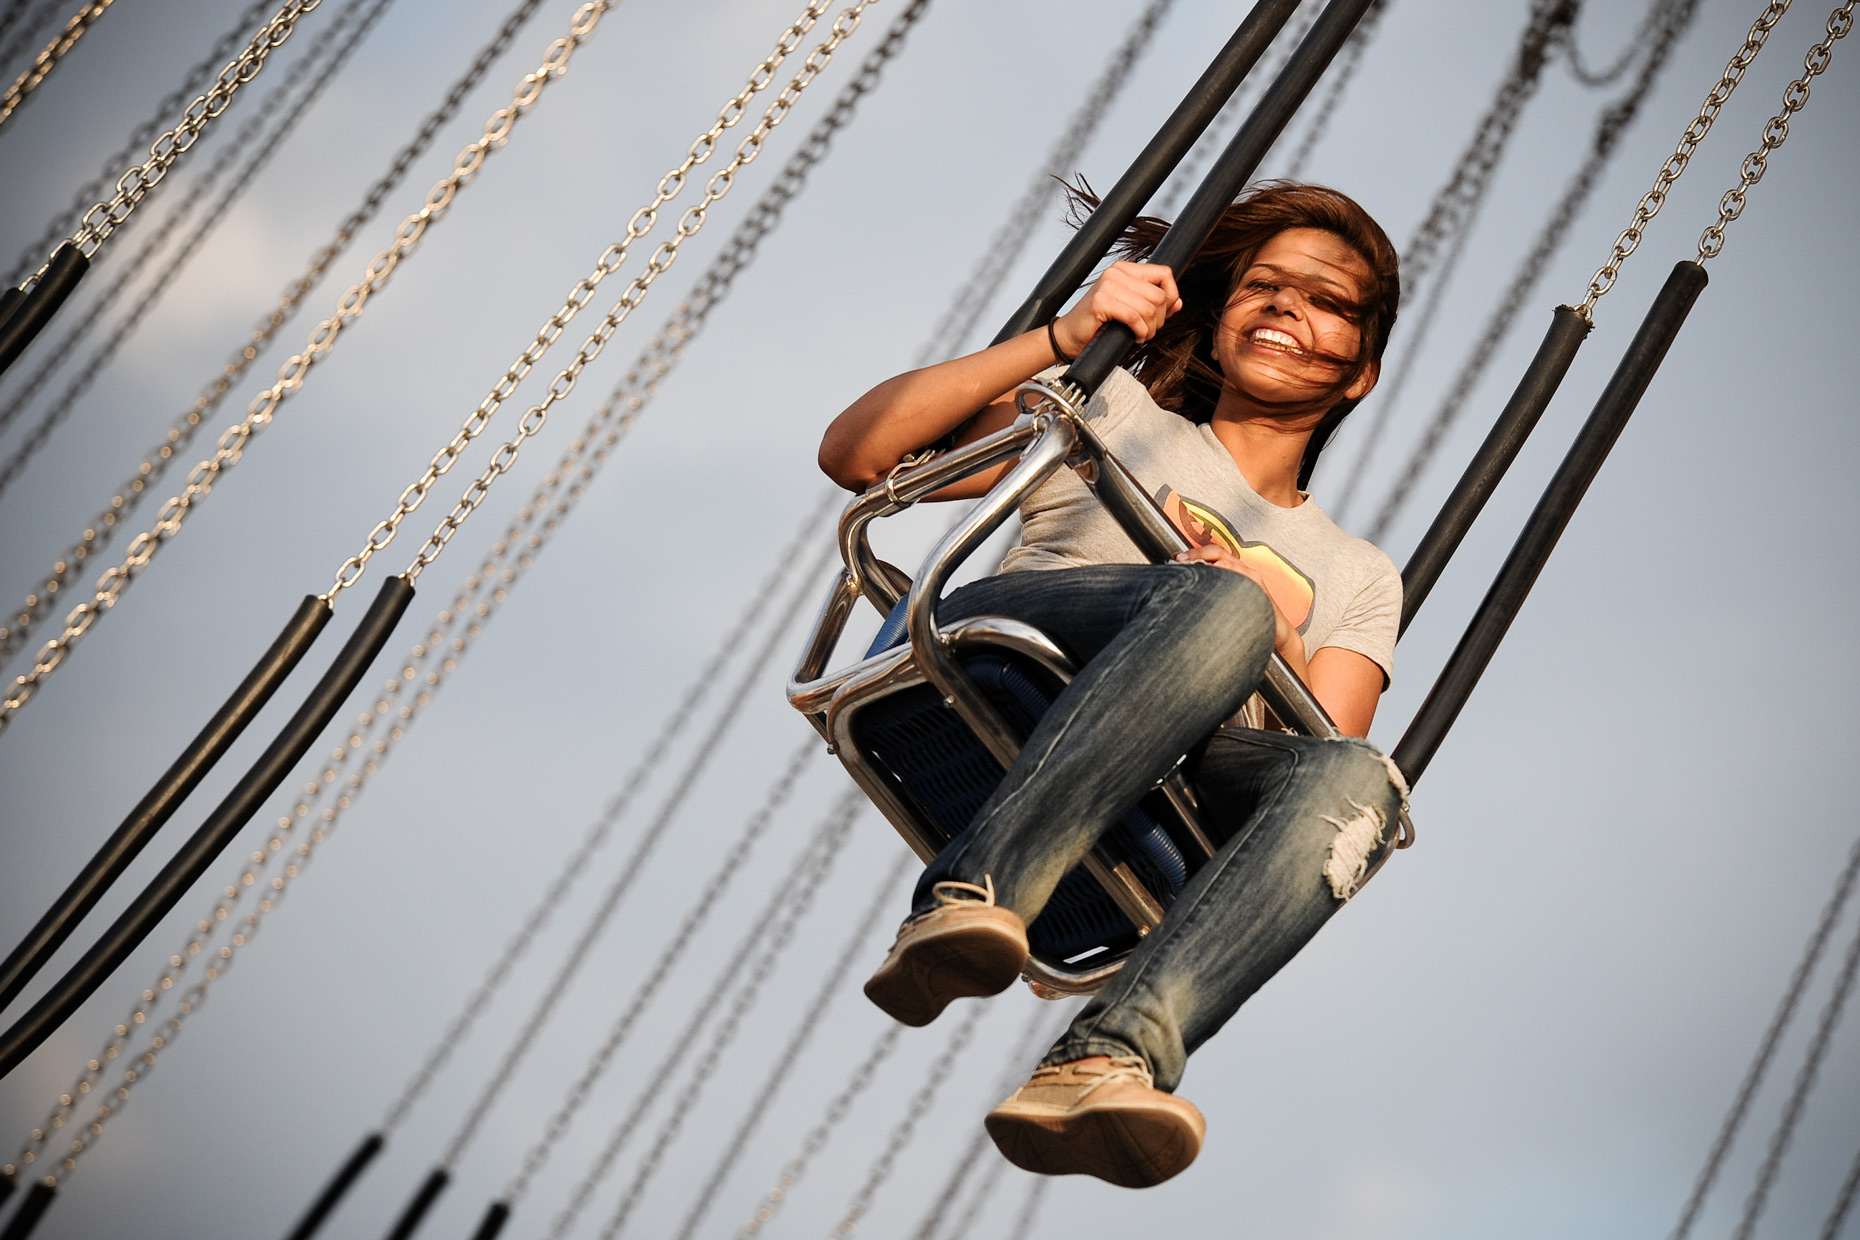 Girl on swings at The State Fair of Texas. Photography by Kevin Brown